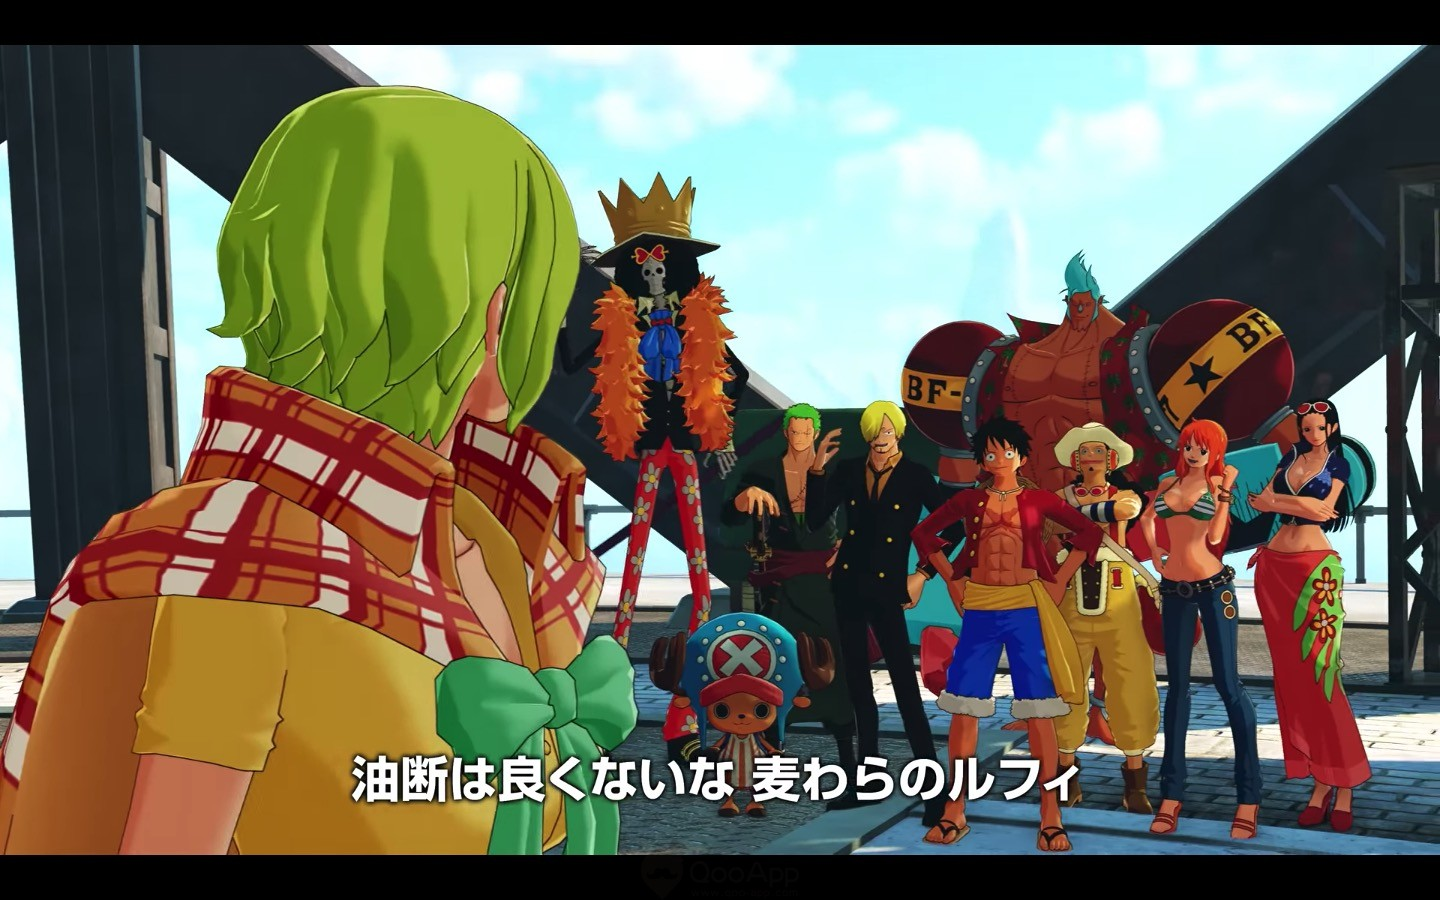 The New PV Shares More Of Games Story Specifically Focusing On Jeanne Young Leader Anti Navy Group Together With Straw Hats